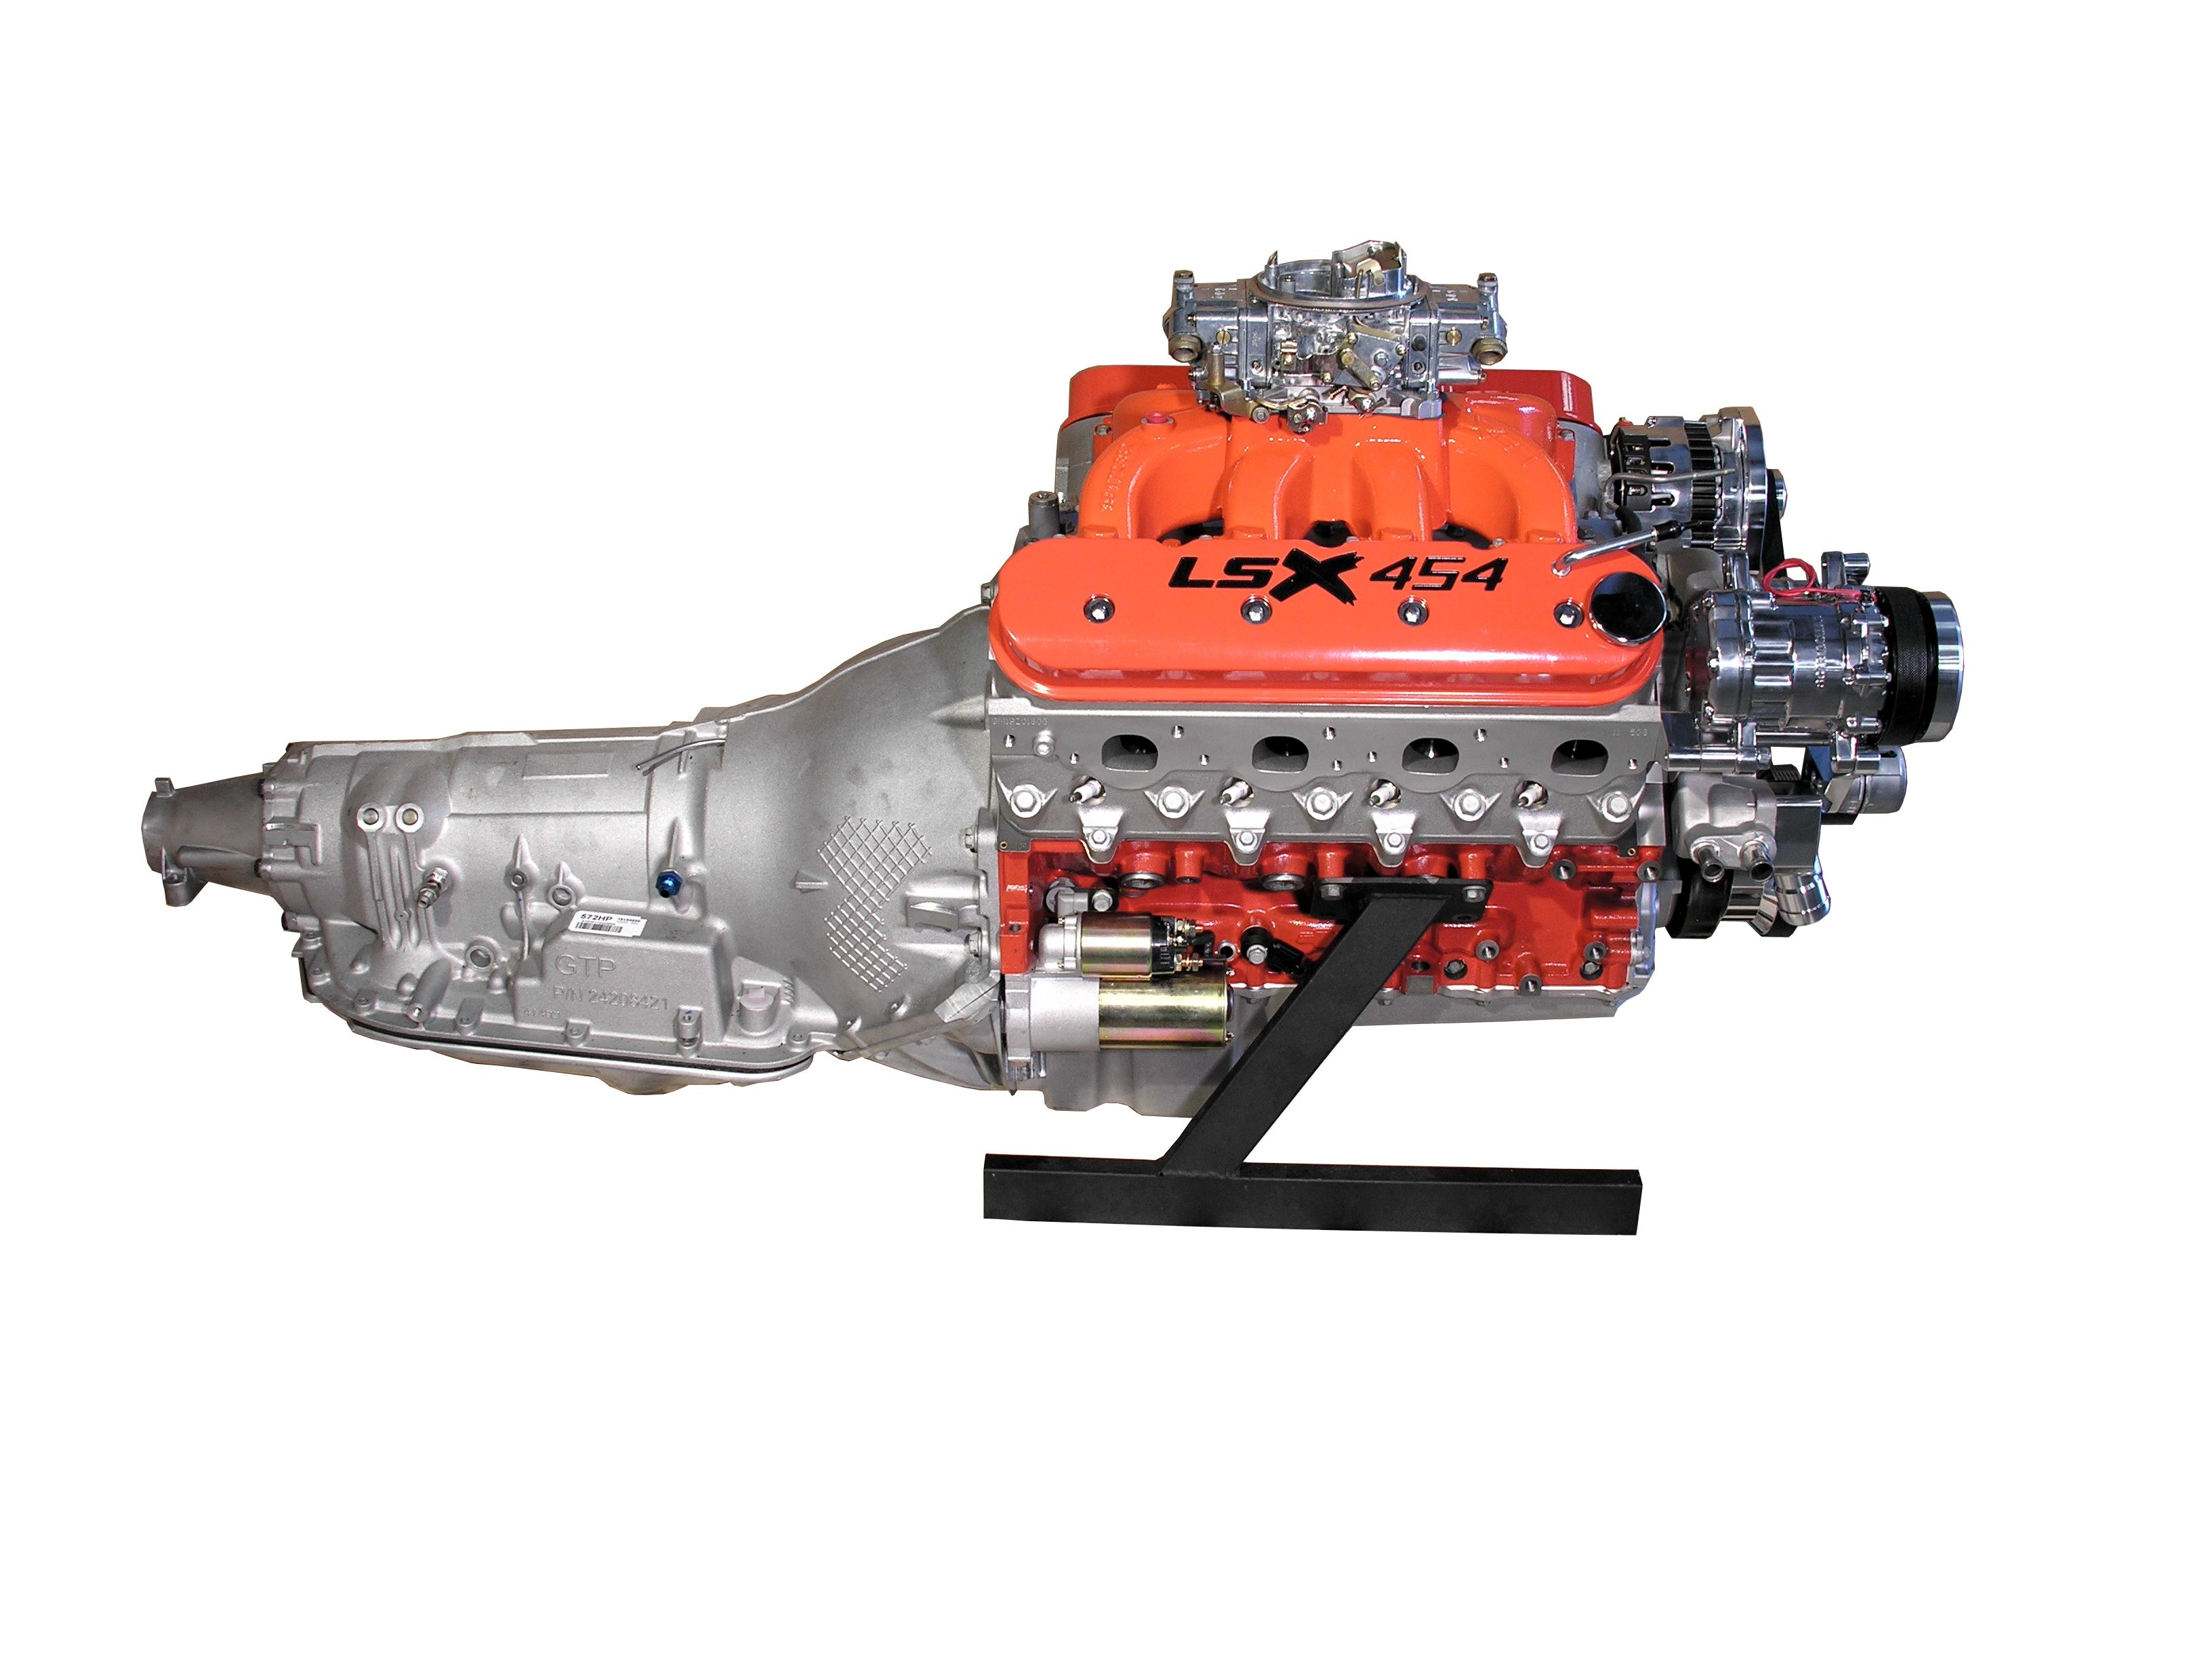 Lsx 454 engine with holley carb and 4l85e transmission 650 hp spsengines com